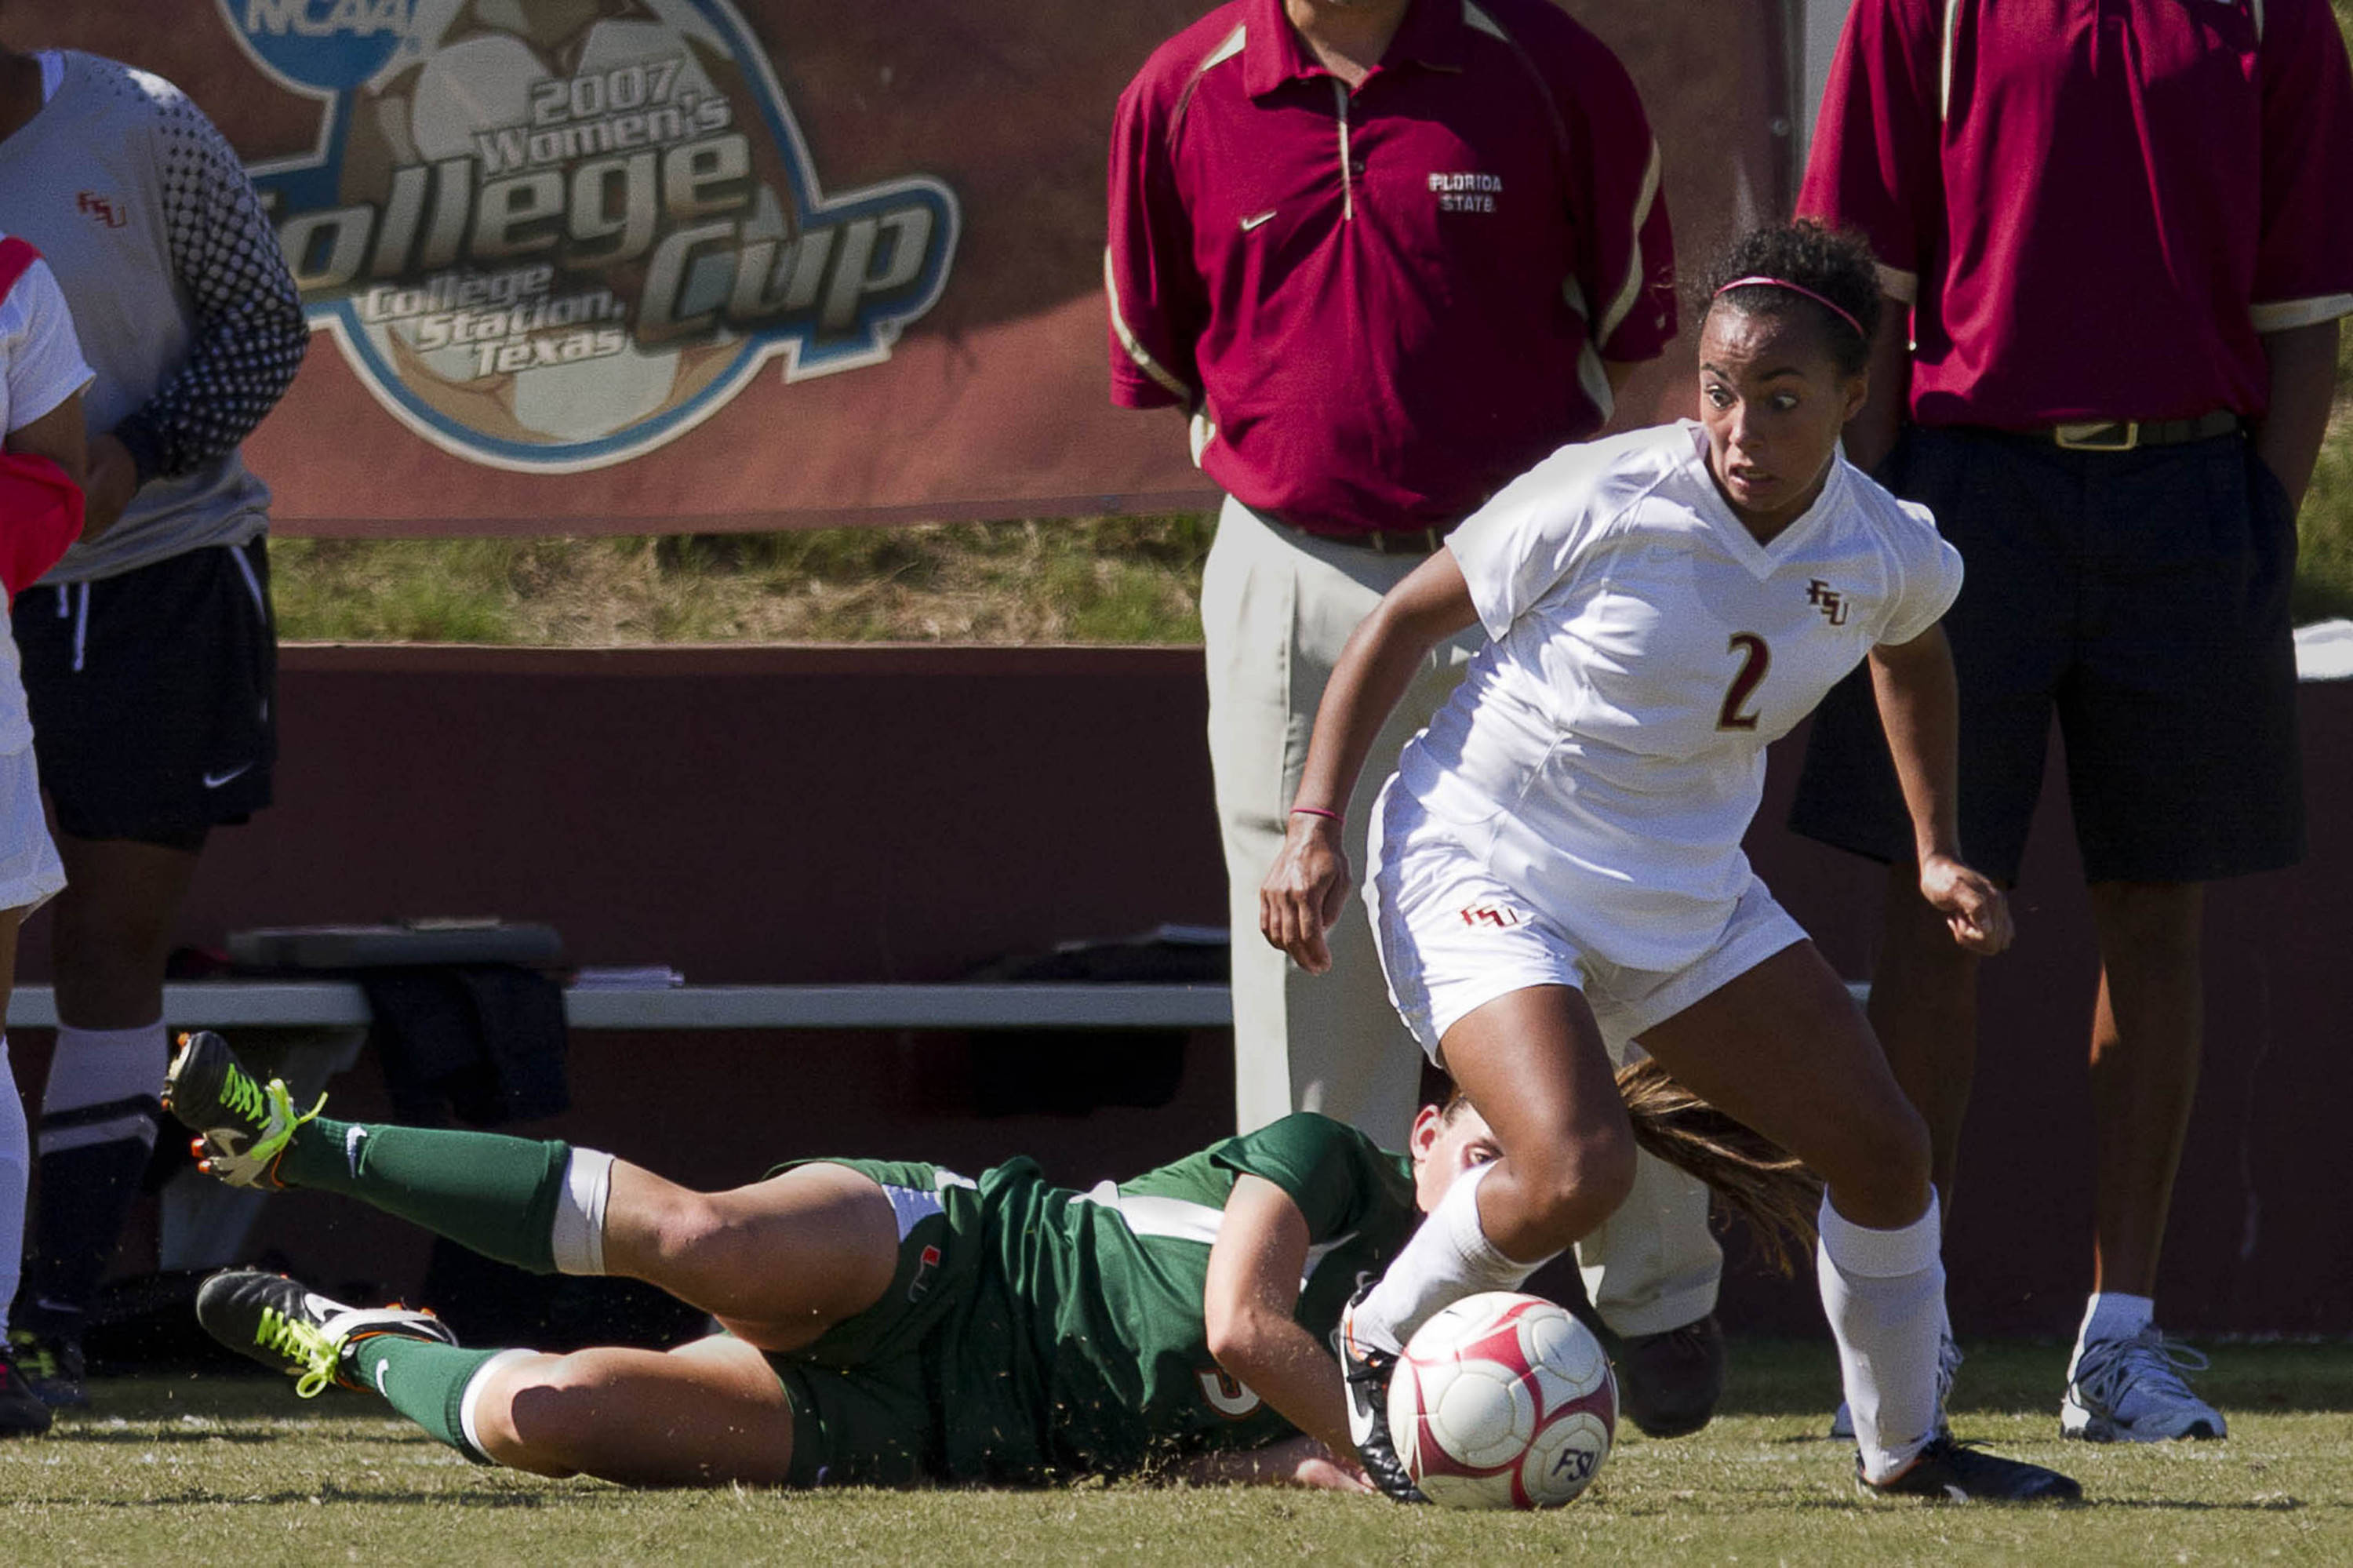 Ines Jaurena (2) protects the ball from a Miami defender.